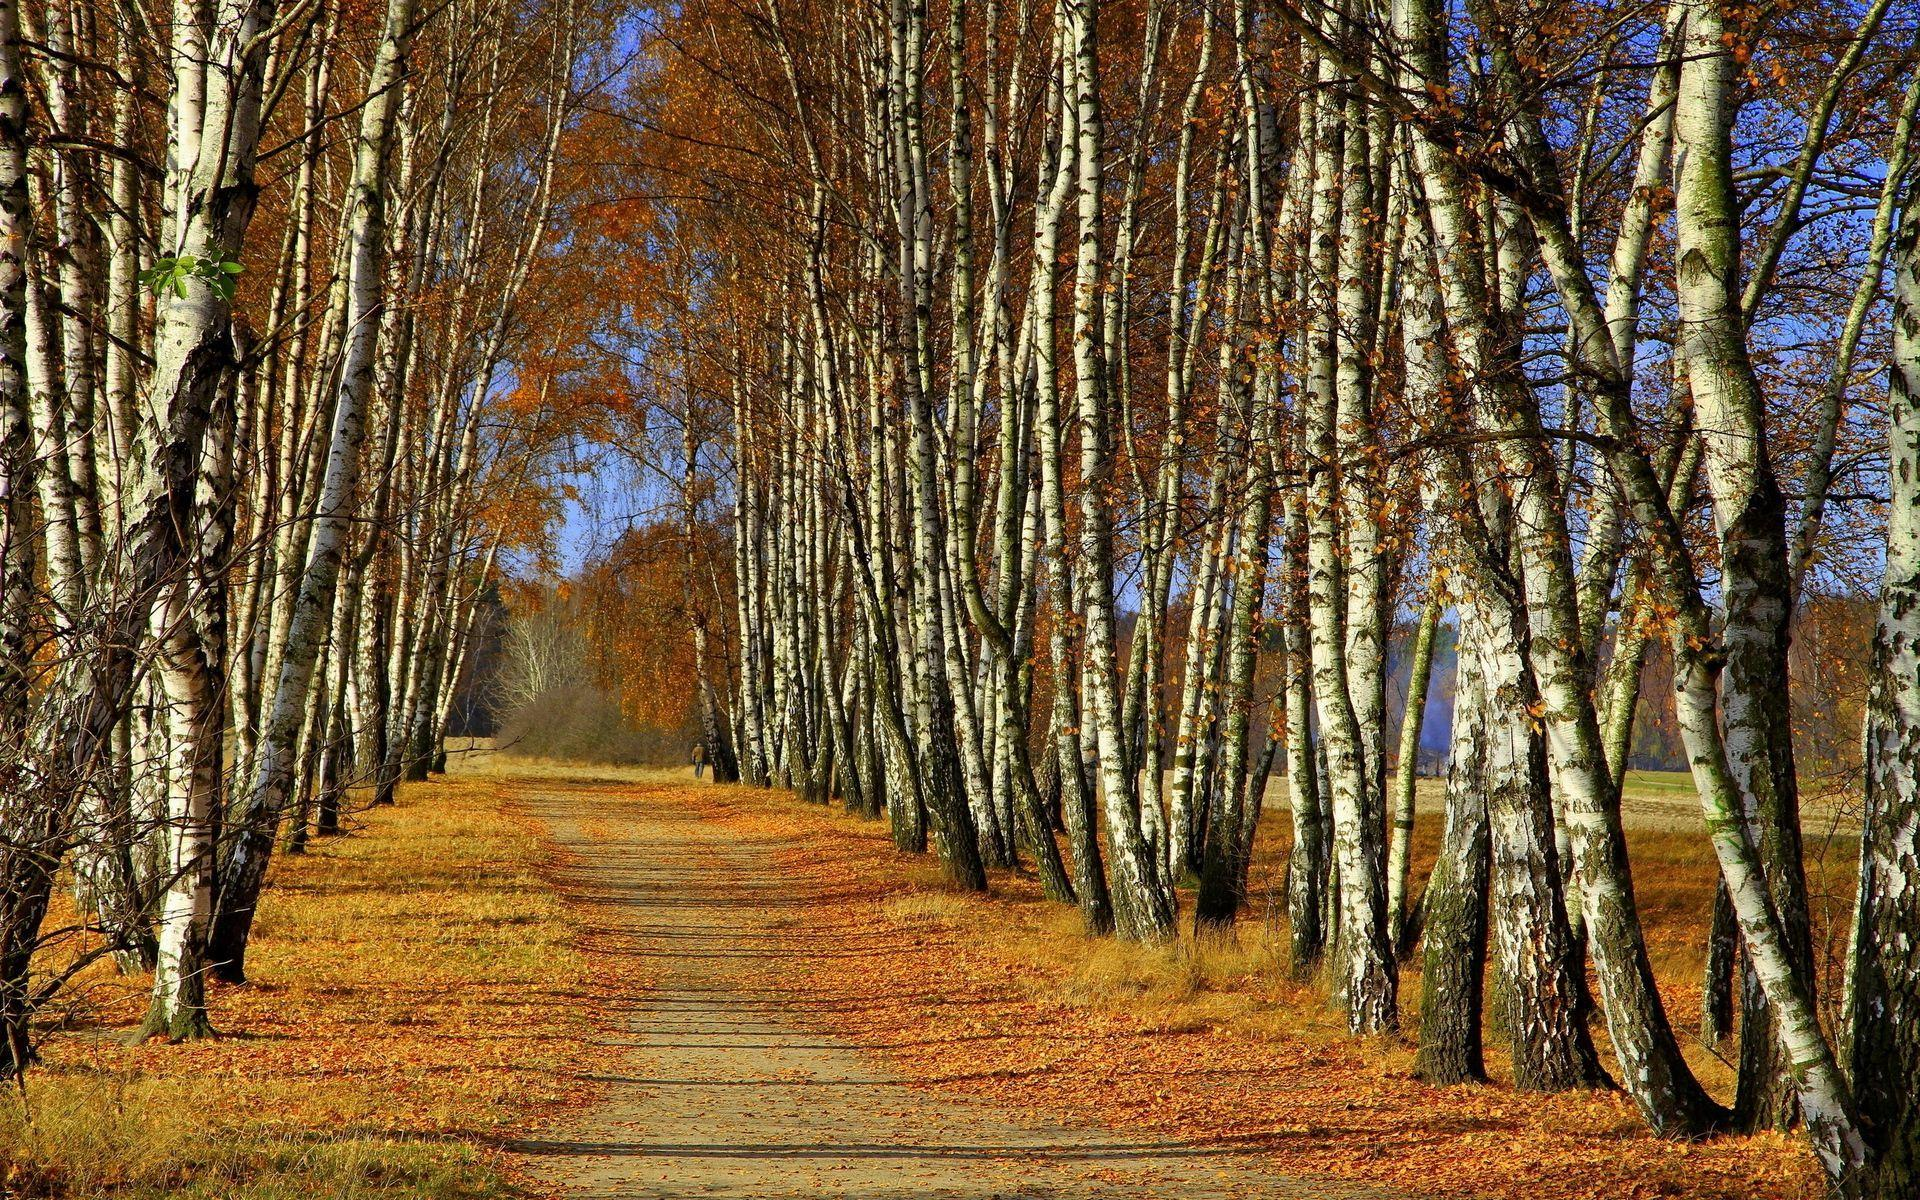 Free Widescreen Wallpaper Fall Path In The Birch Forest Hd Desktop Wallpaper Widescreen